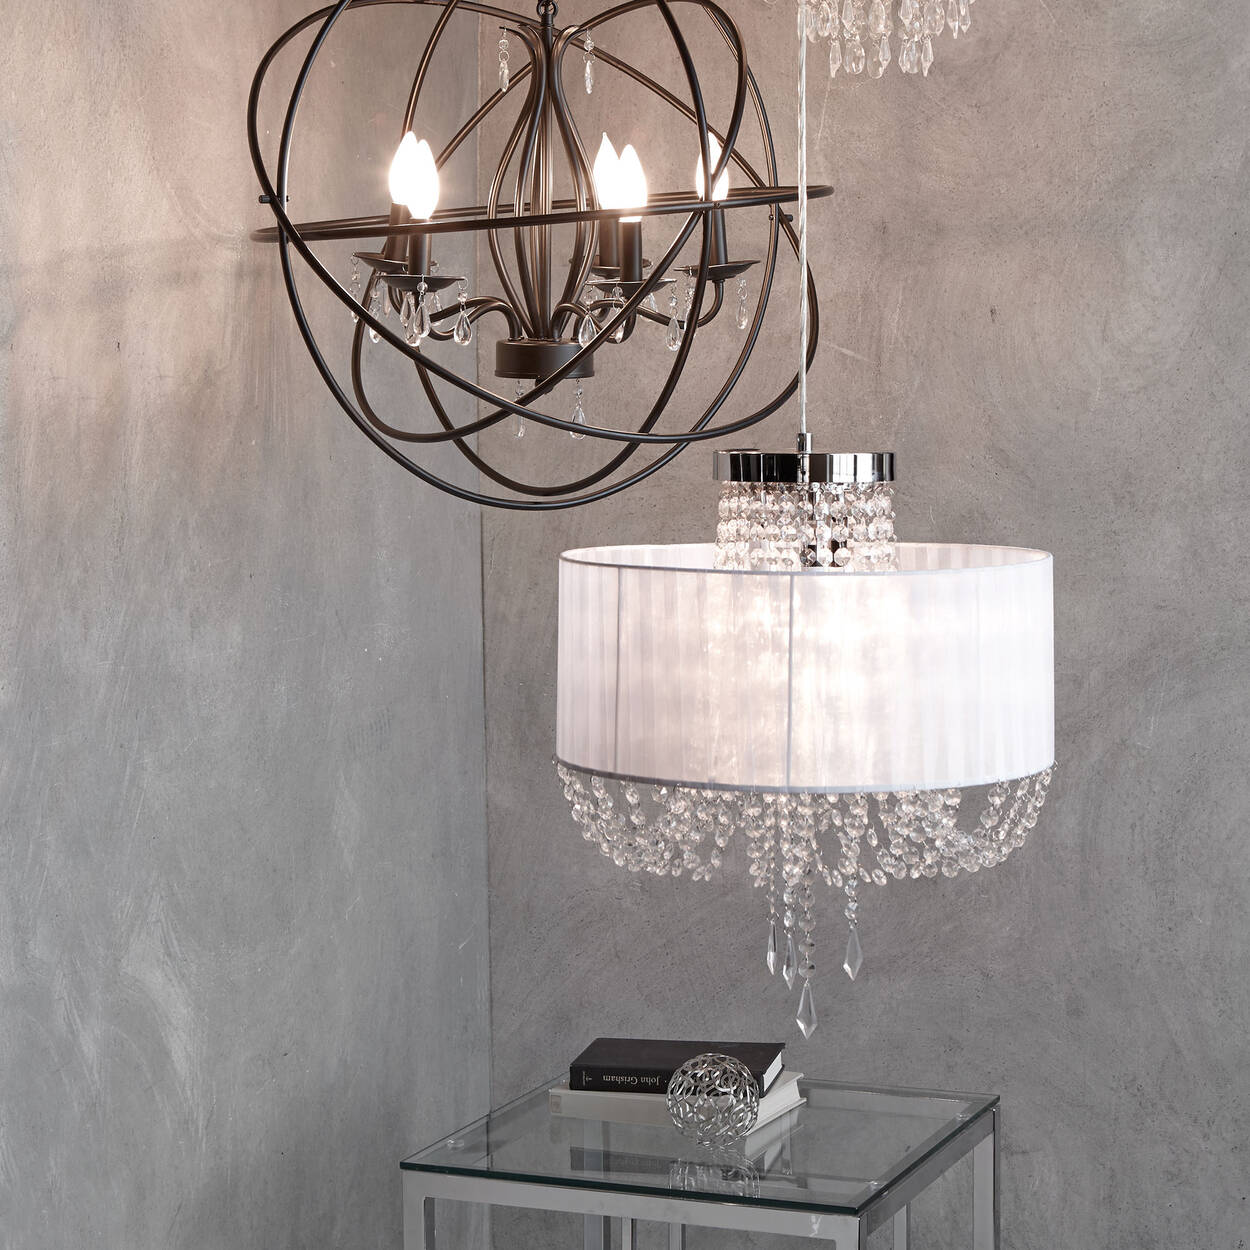 Ribbon & Droplets Ceiling Lamp